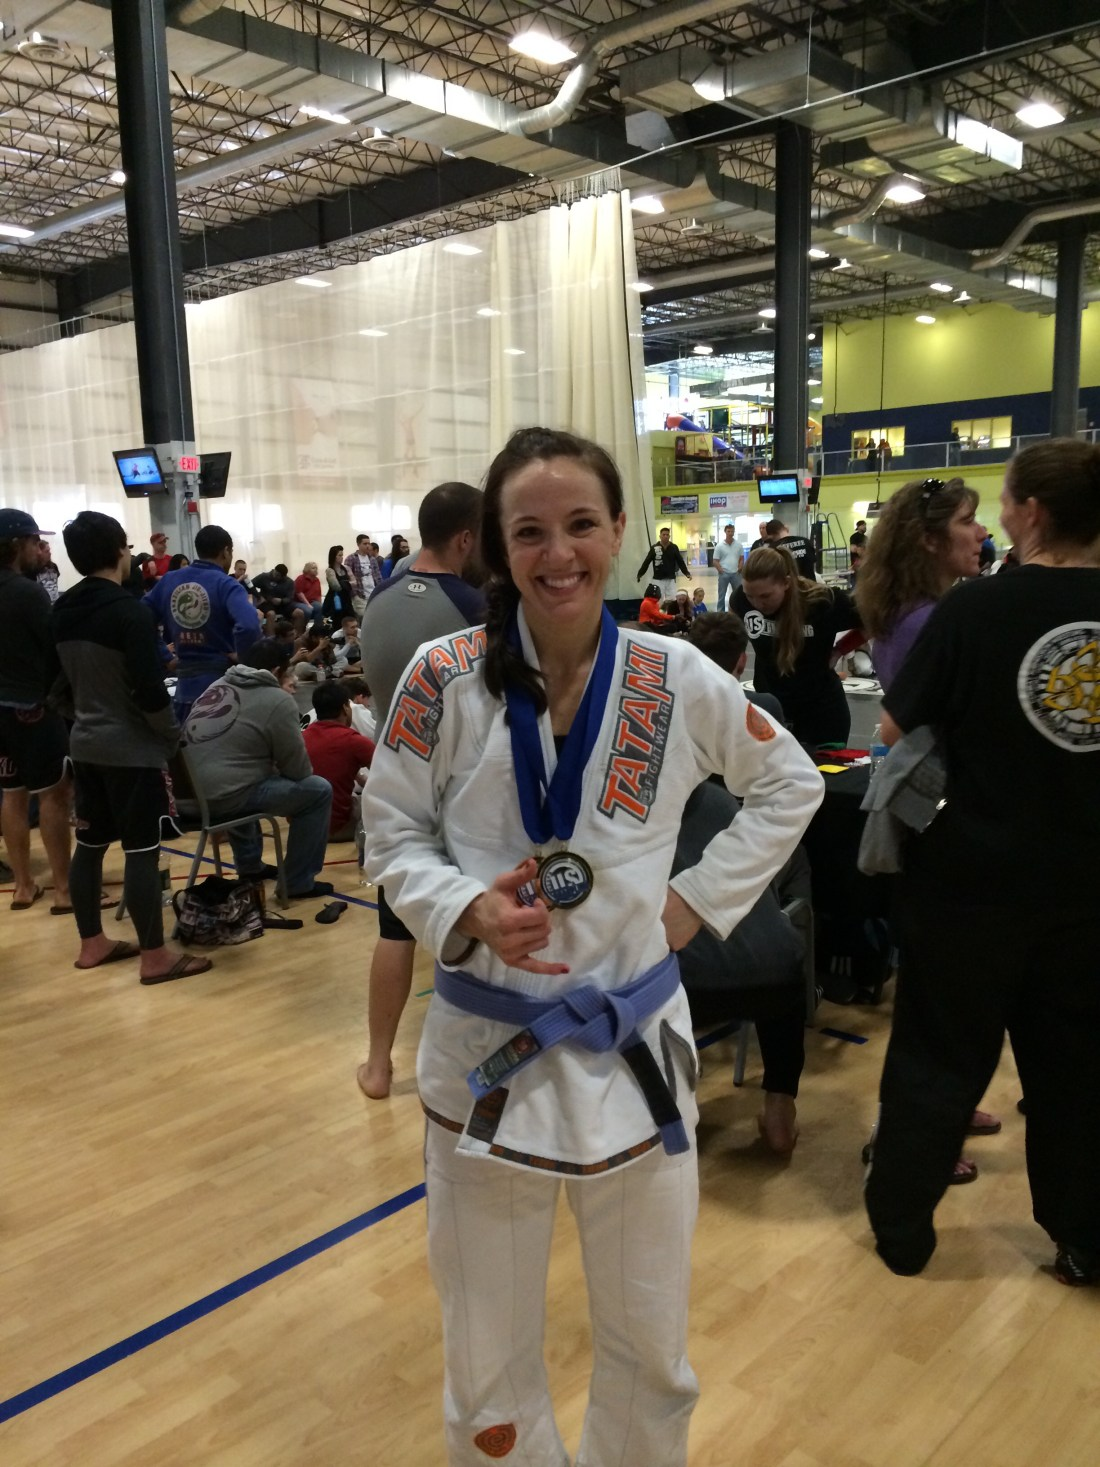 Stephanie winning two gold medals in her weight division and absolute